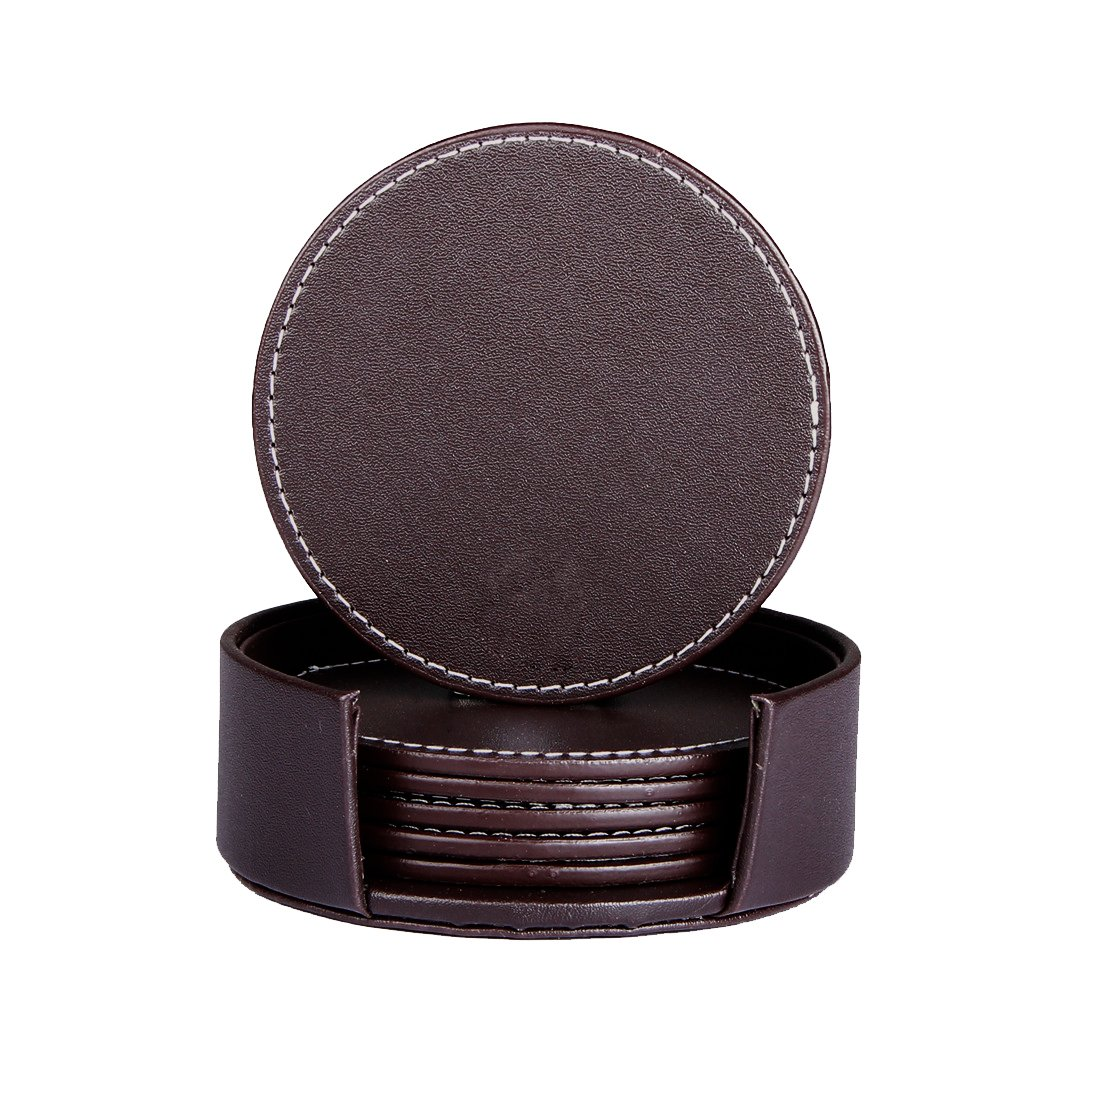 SanPlus Set of 6 Leather Coasters, Protect Furniture from Water Marks Scratch and Damage, Simple and Classy Coasters for Drinks (black)